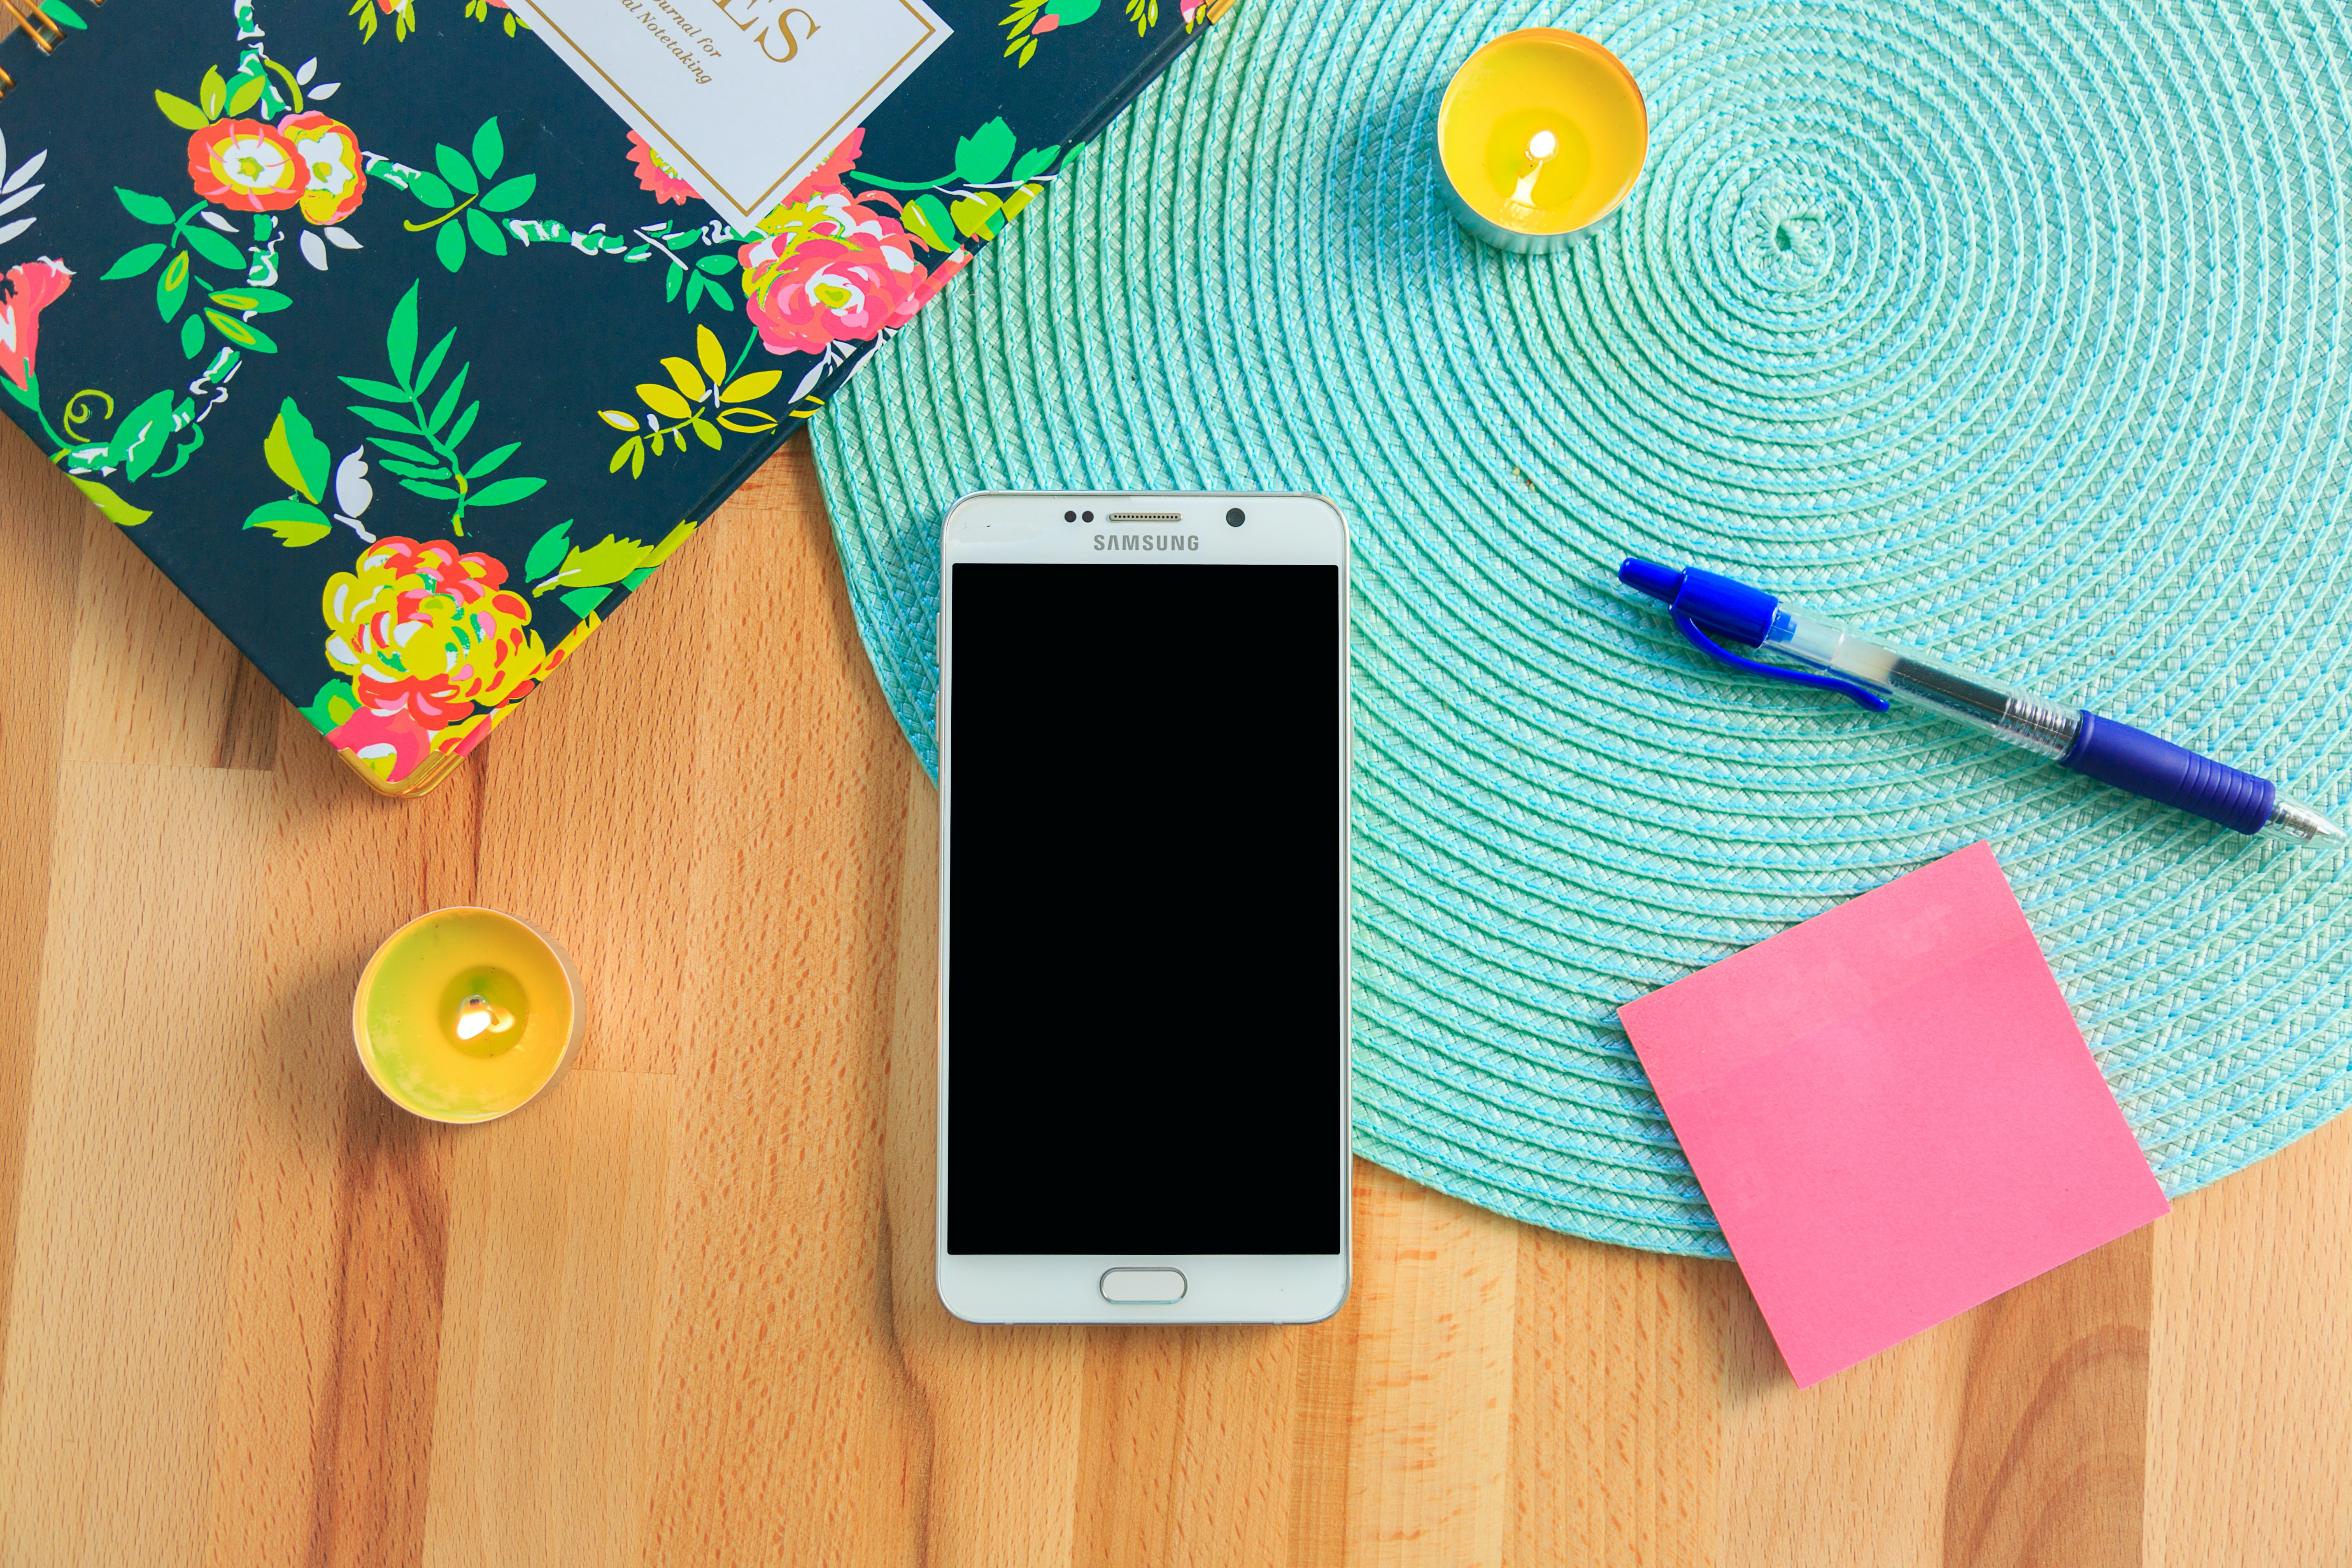 white Samsung Galaxy smartphone on top of blue place mat near blue click pen